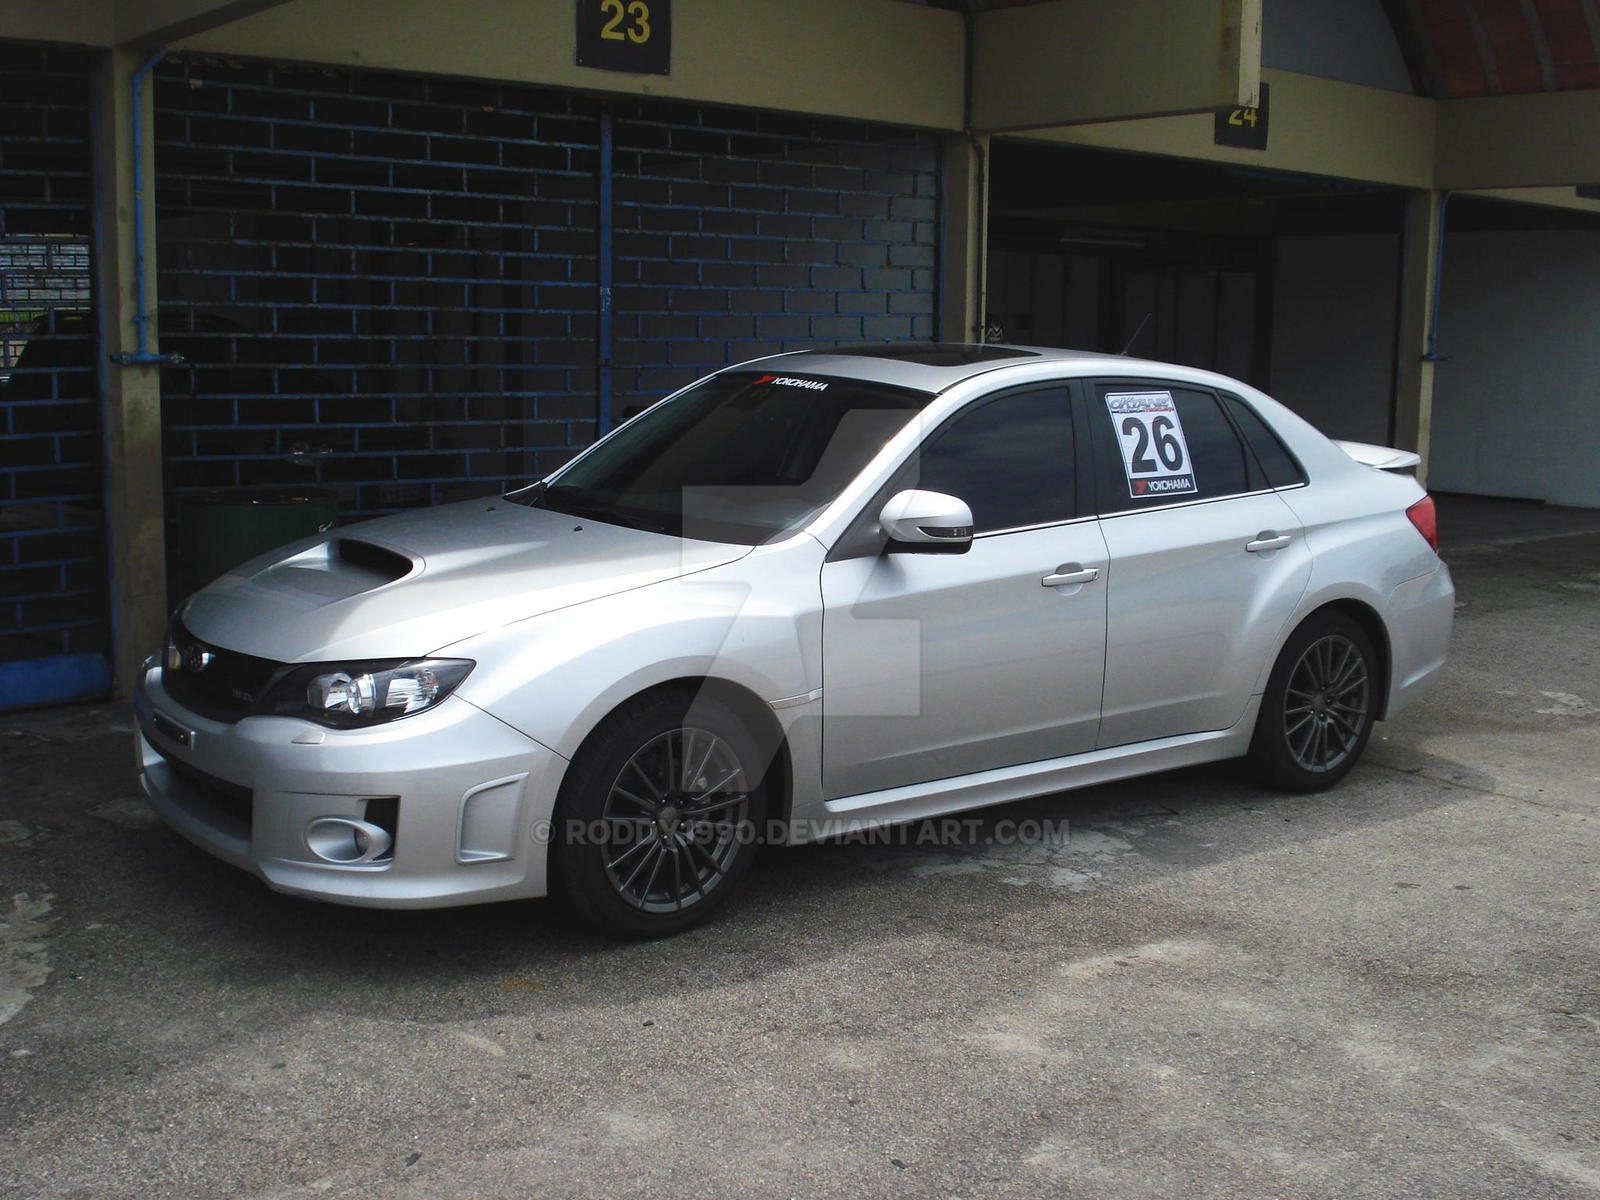 2011 subaru impreza wrx 2 by roddy1990